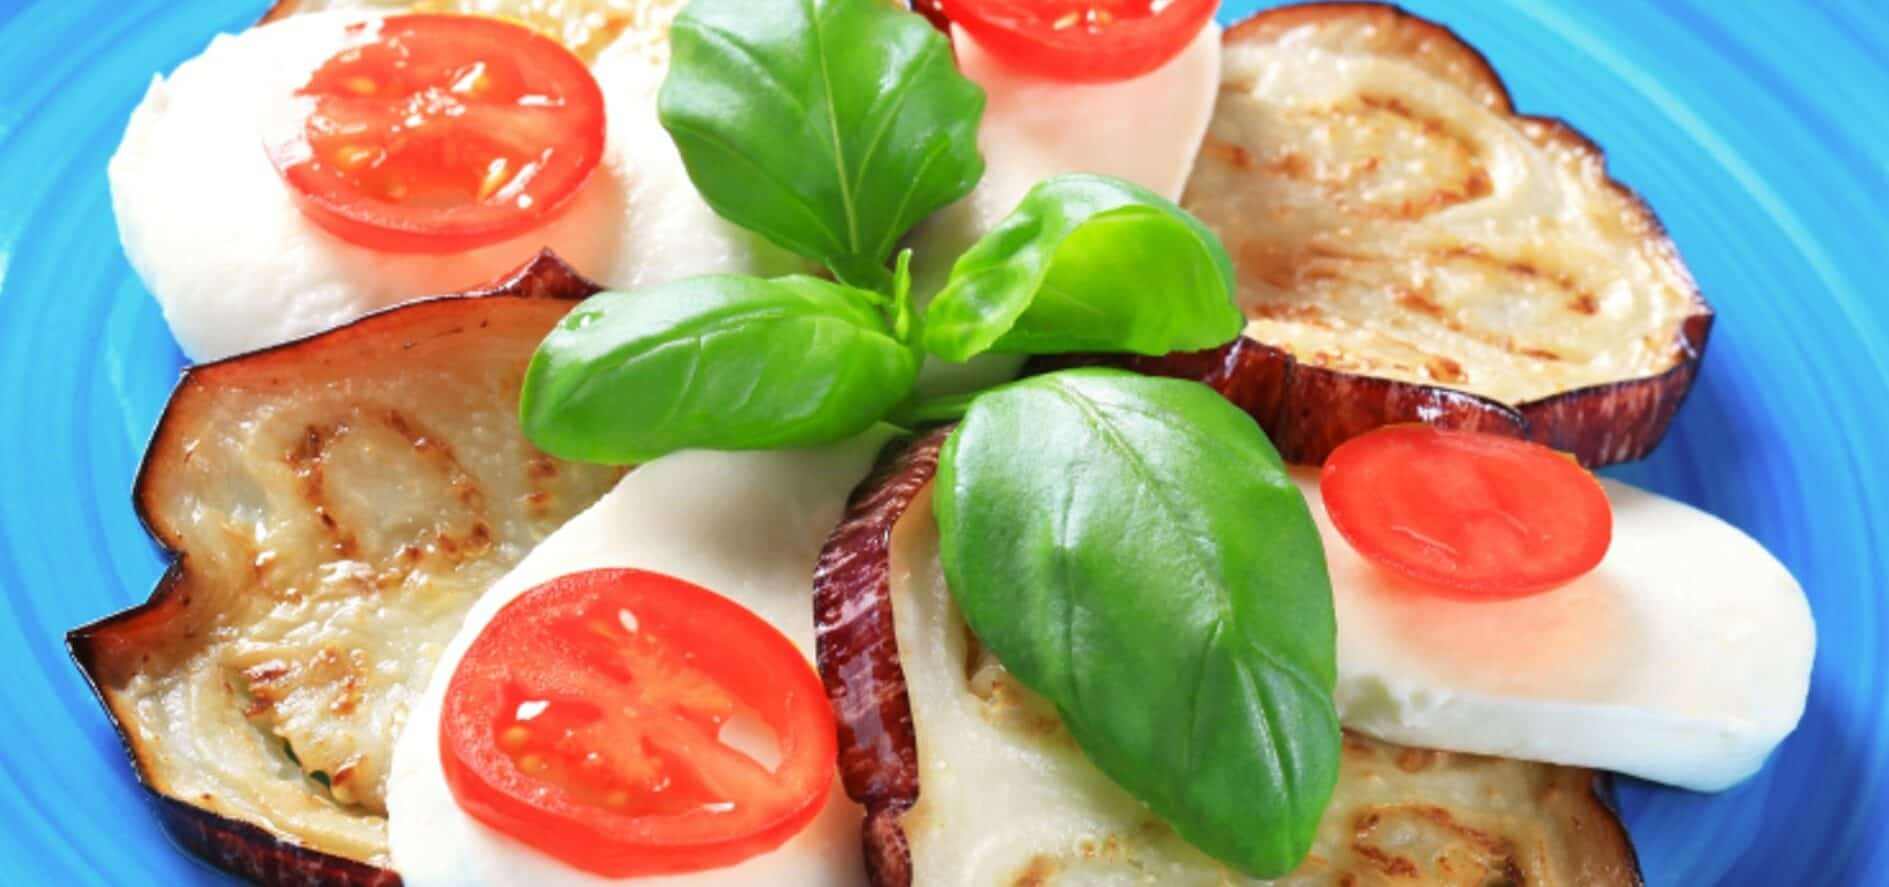 Grilled Eggplant With Mozzarella and Basil